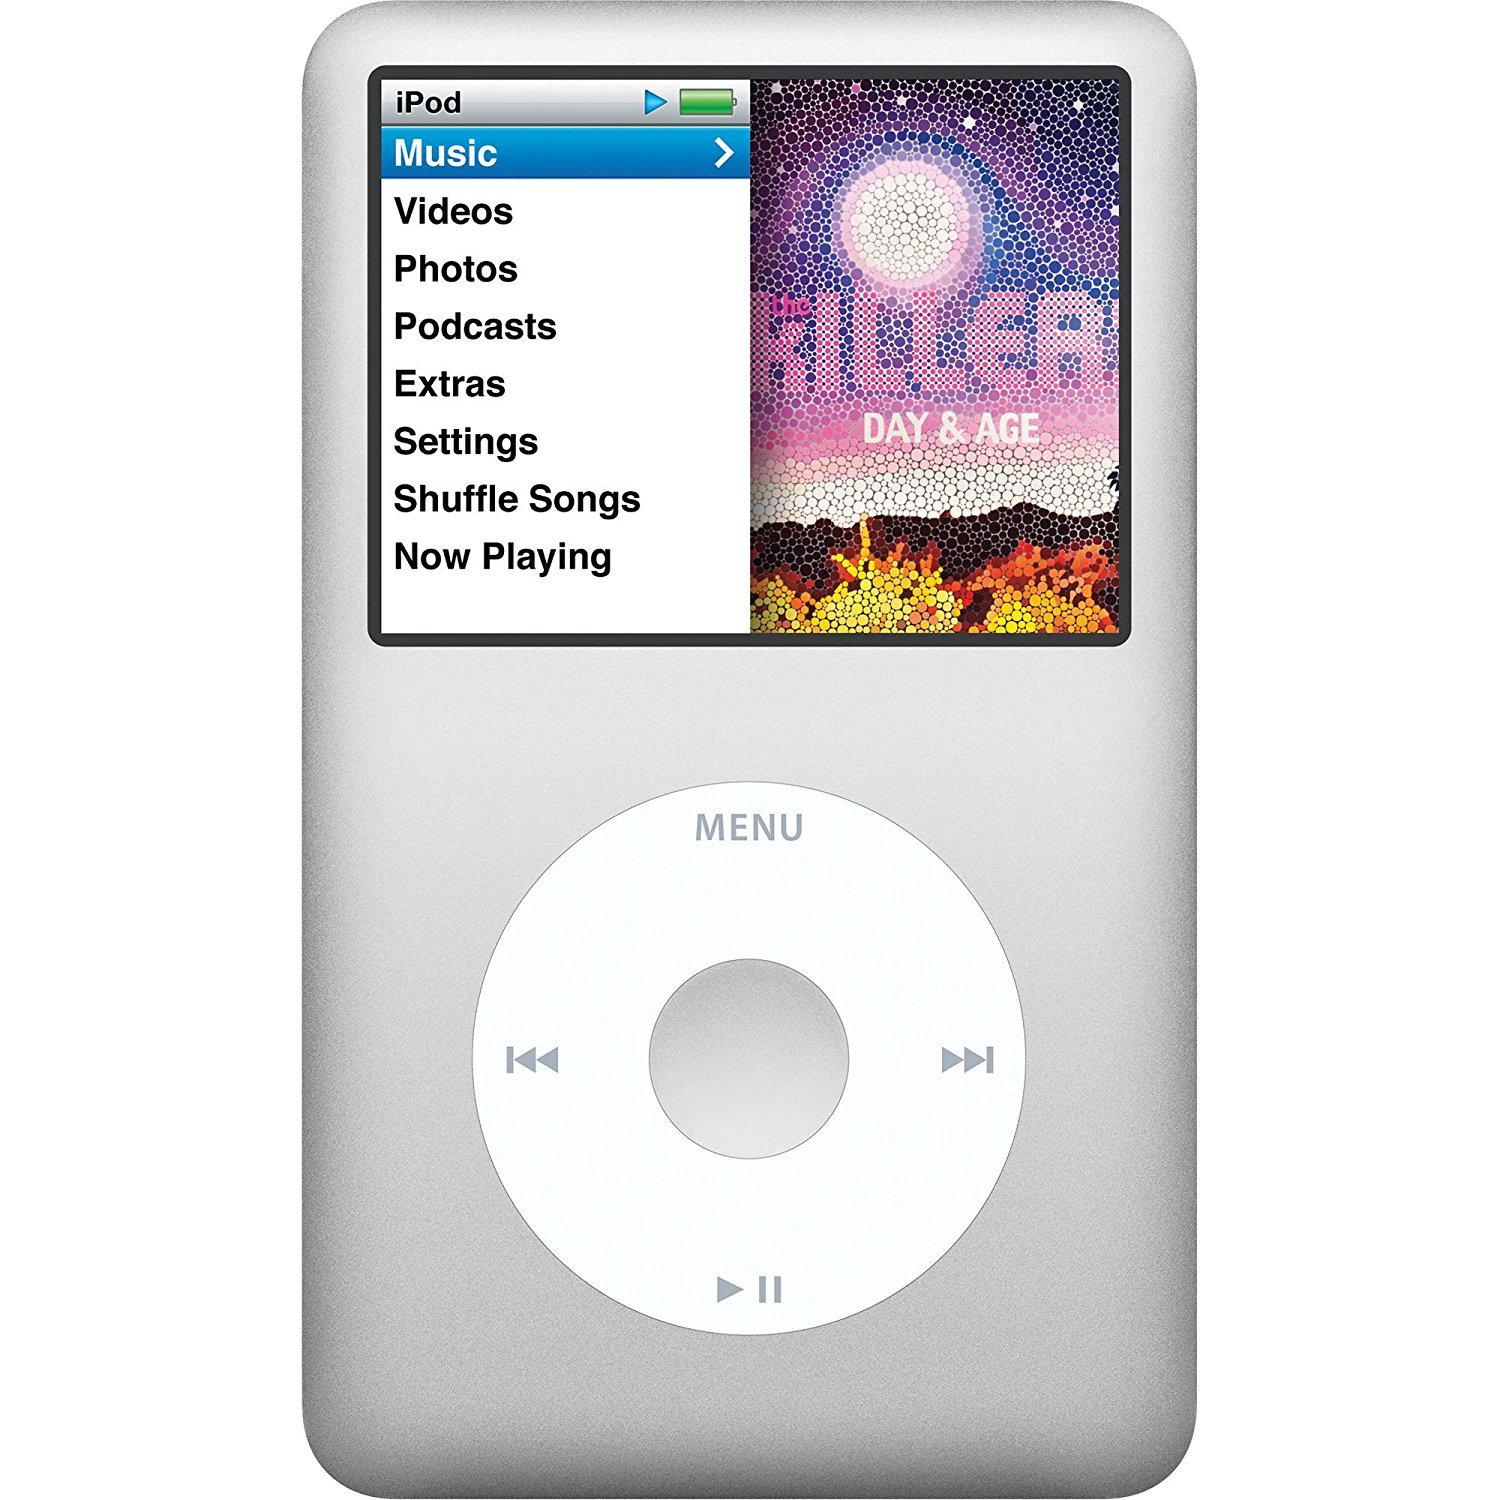 Apple iPod classic 120 GB Silver 6th Generation (Discontinued by Manufacturer) Non Retail White Box Packaging by Gadgets World